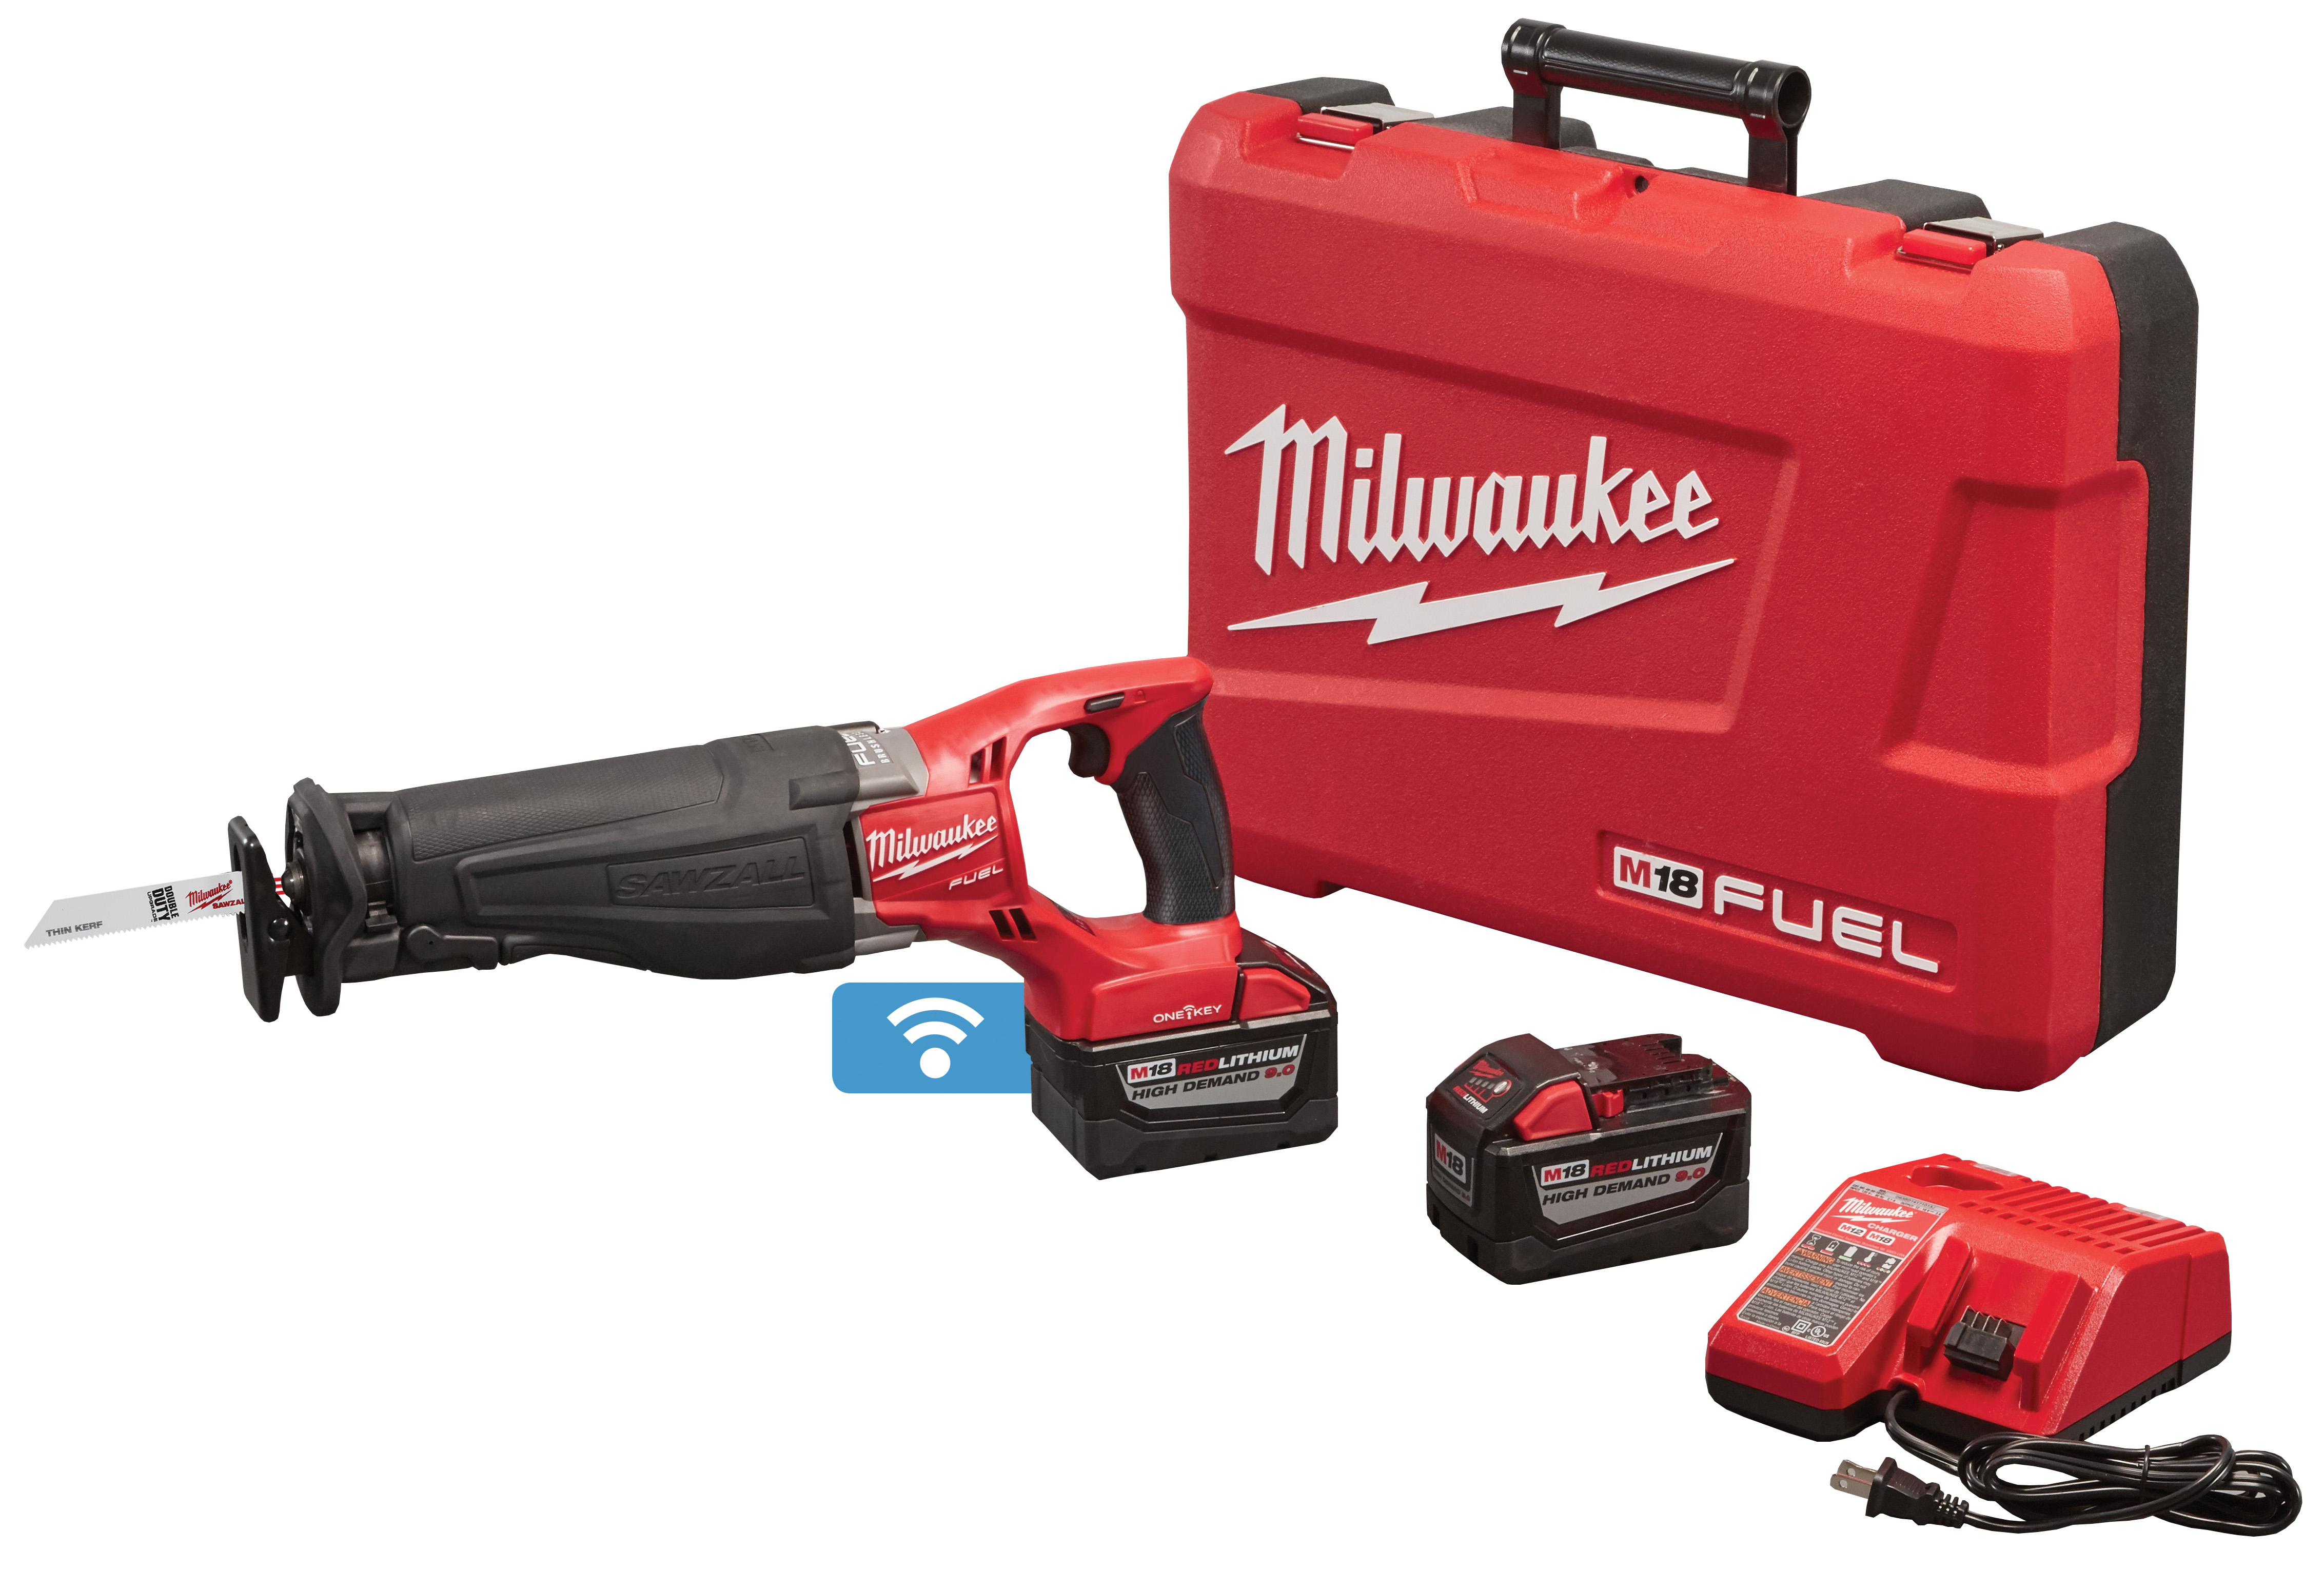 Milwaukee® M18™ FUEL™ SAWZALL™ 2721-22HD Adjustable Shoe High Demand Cordless Reciprocating Saw Kit With One-Key™, 1-1/8 in L Stroke, 0 to 3000 spm, Straight Cut, 18 VDC, 17-3/4 in OAL